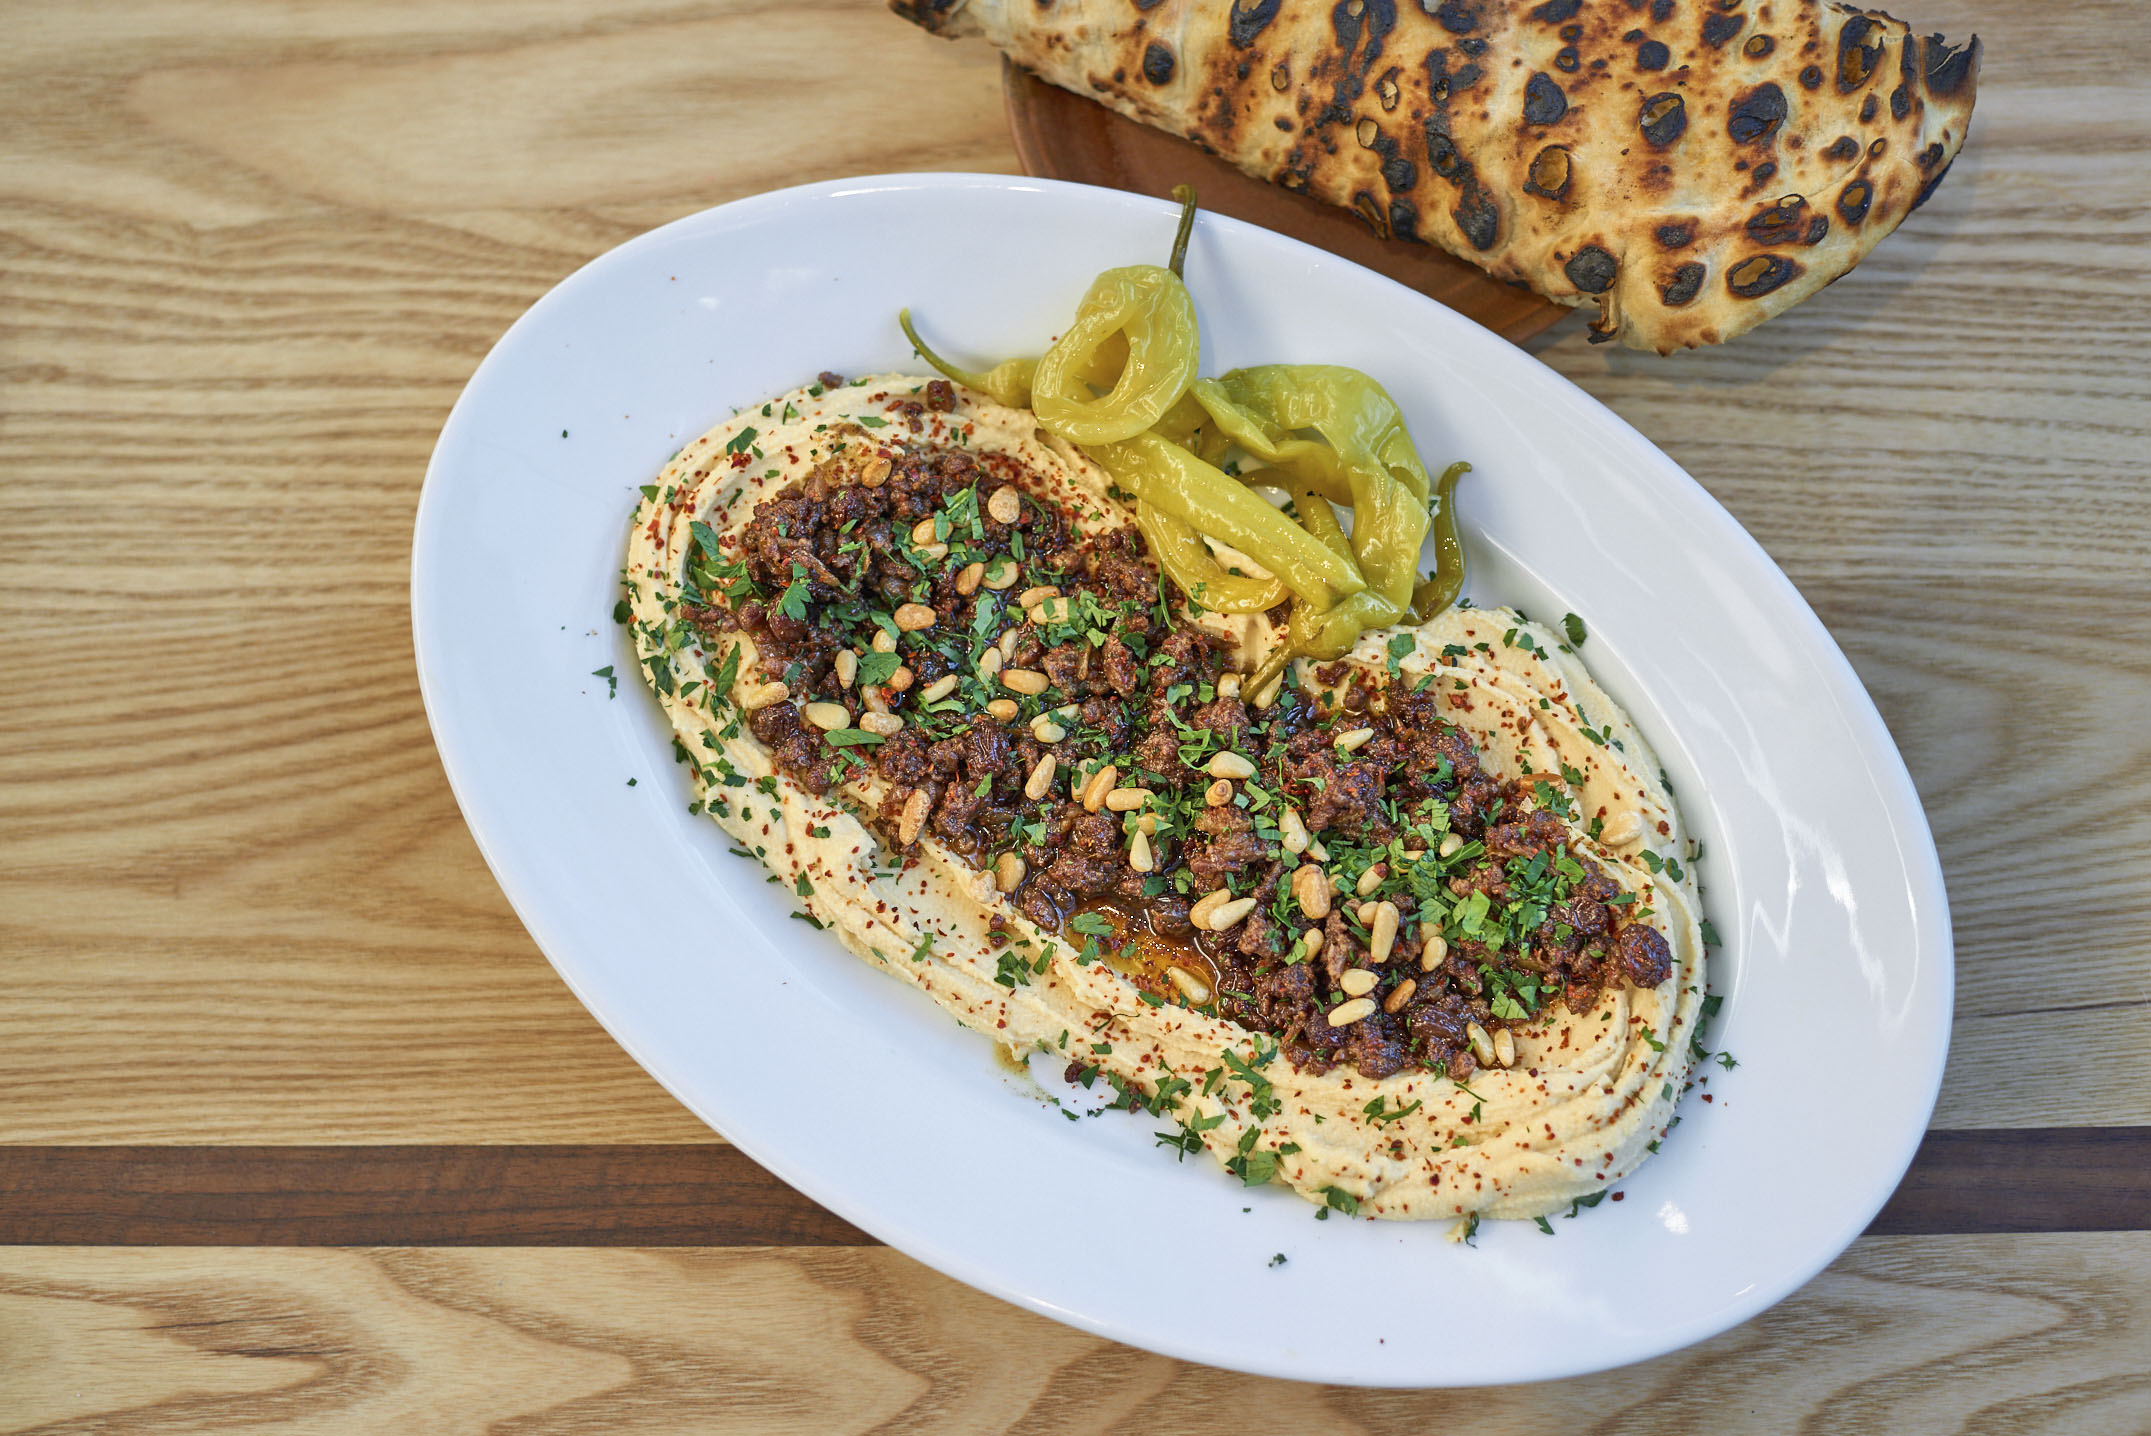 Baharat-spiced lamb, hummus, pine nuts, raisins and flatbreads